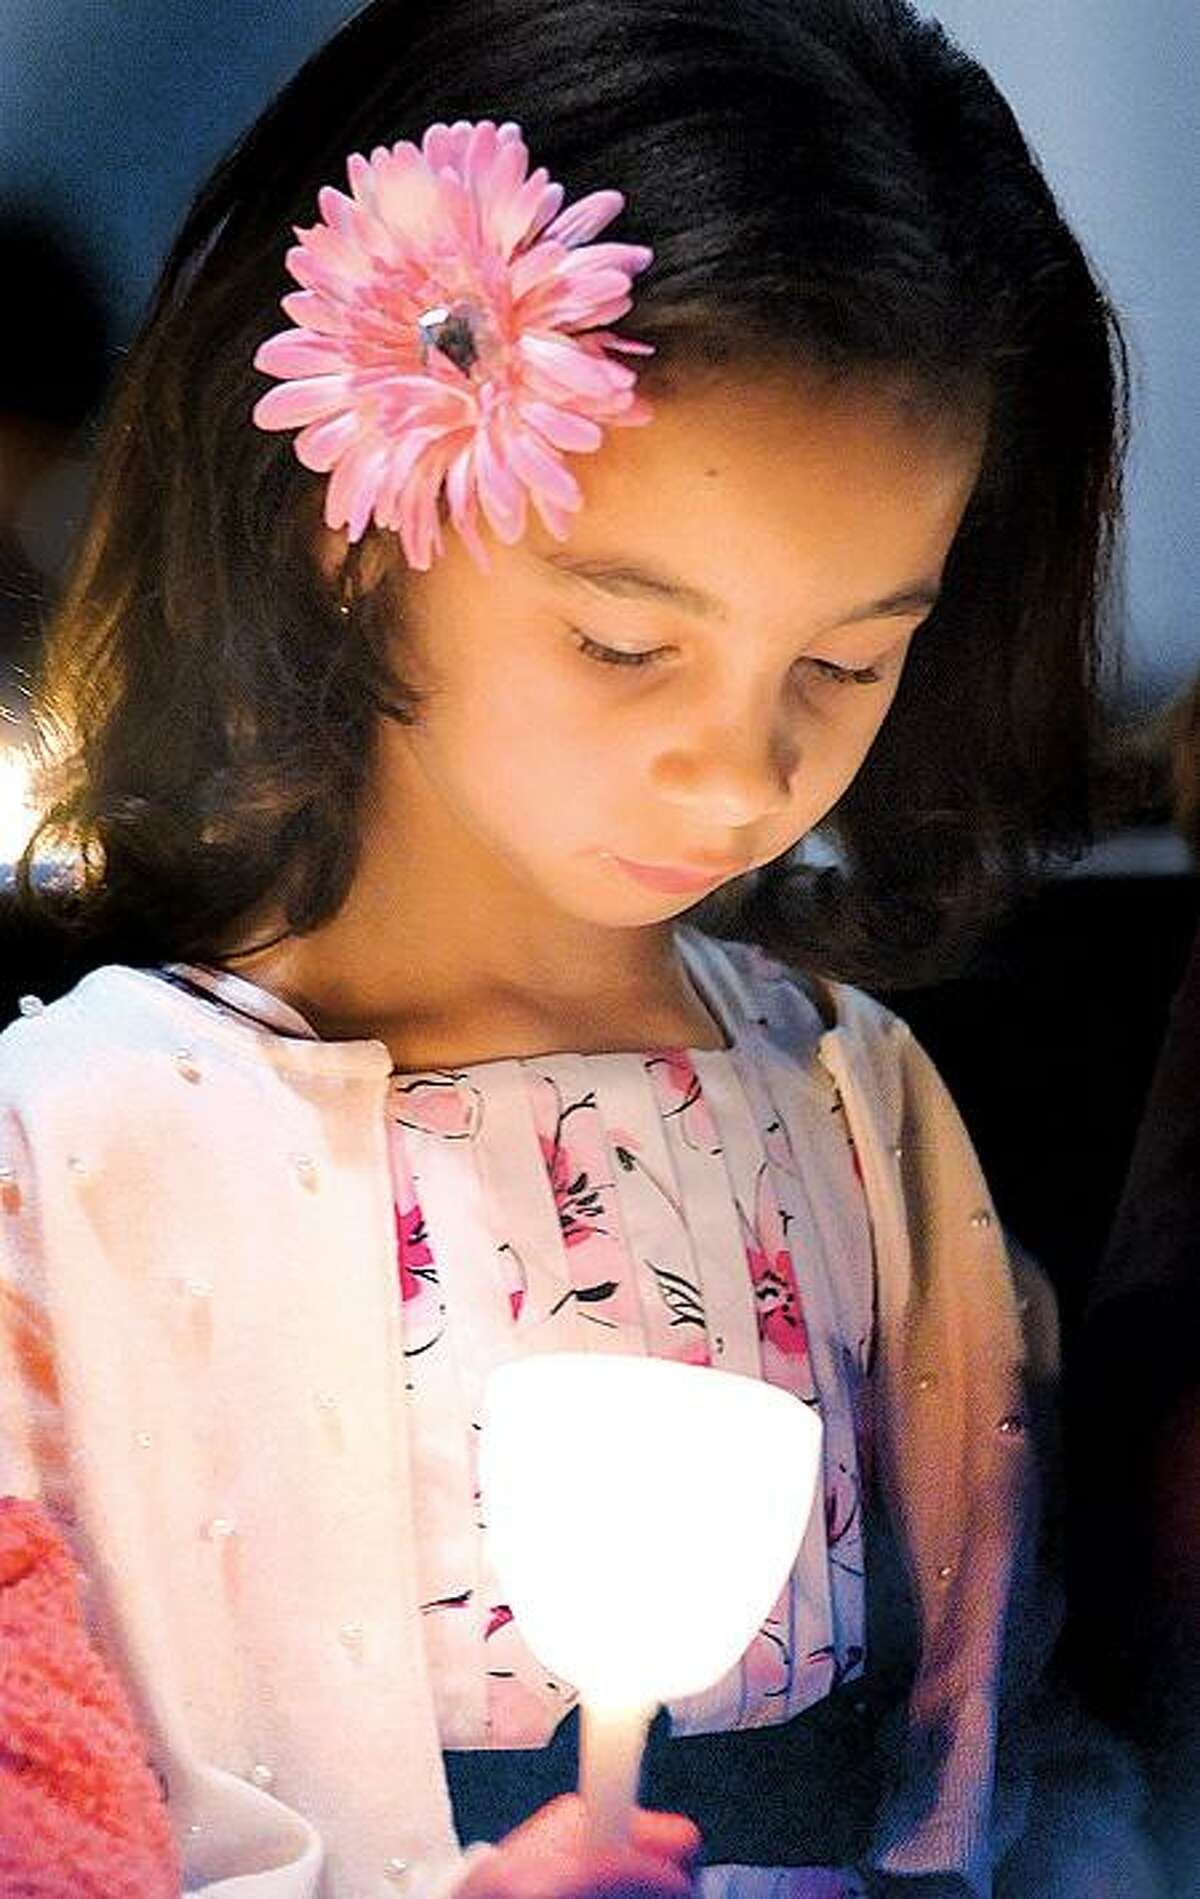 Nora Mullins, 7, of West Haven, holds her candle during an Easter vigil Saturday at the Church of the Holy Spirit in West Haven. (Melanie Stengel/Register)